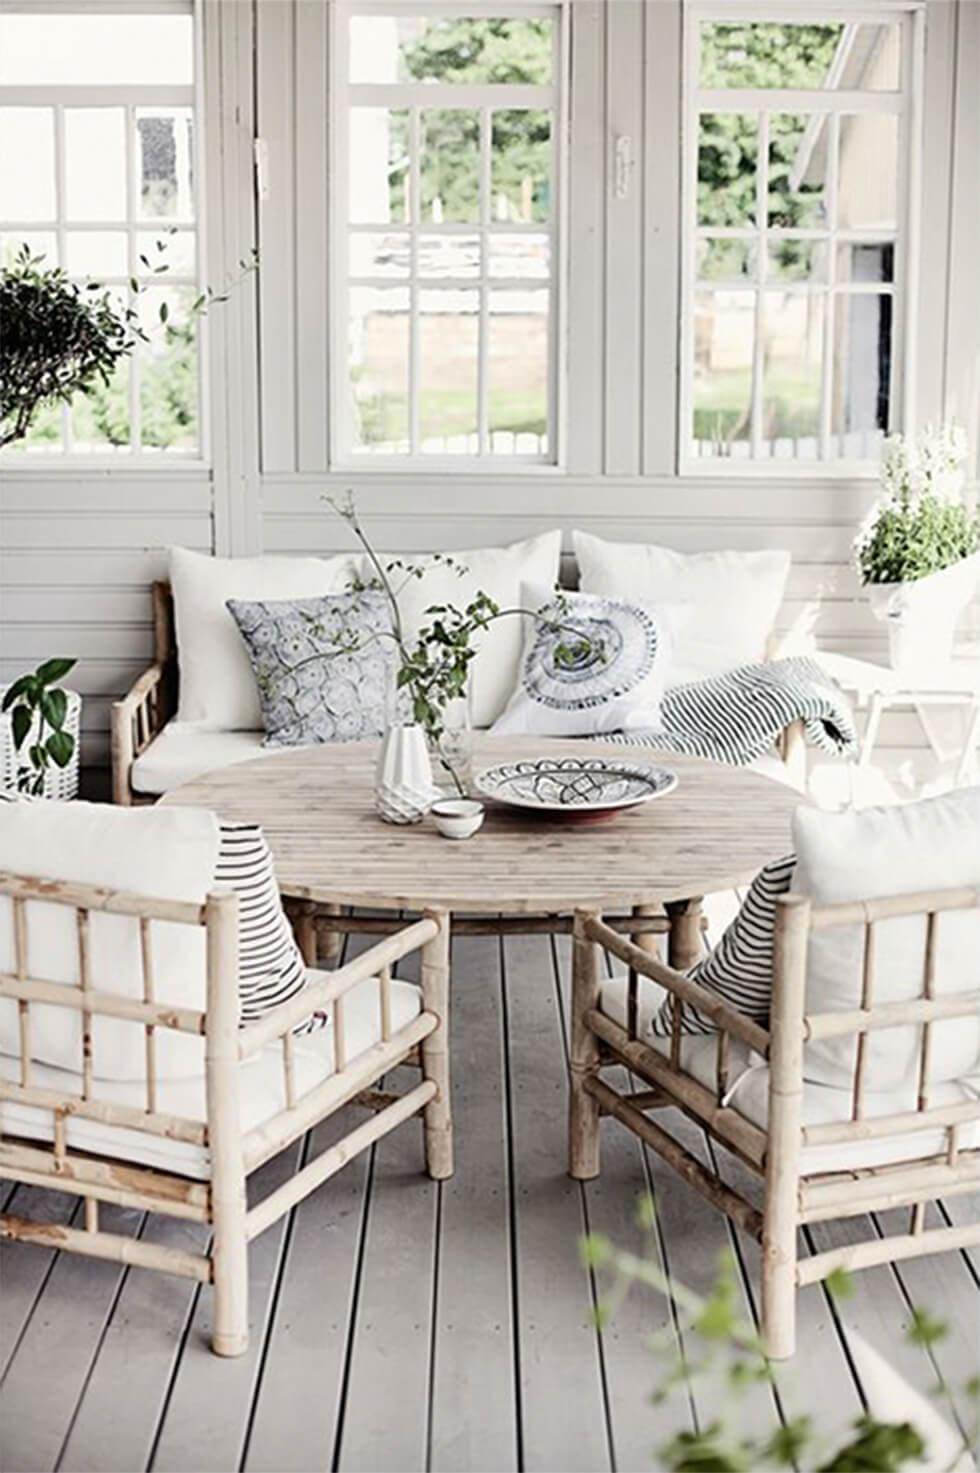 Rattan chairs in rustic outdoor patio